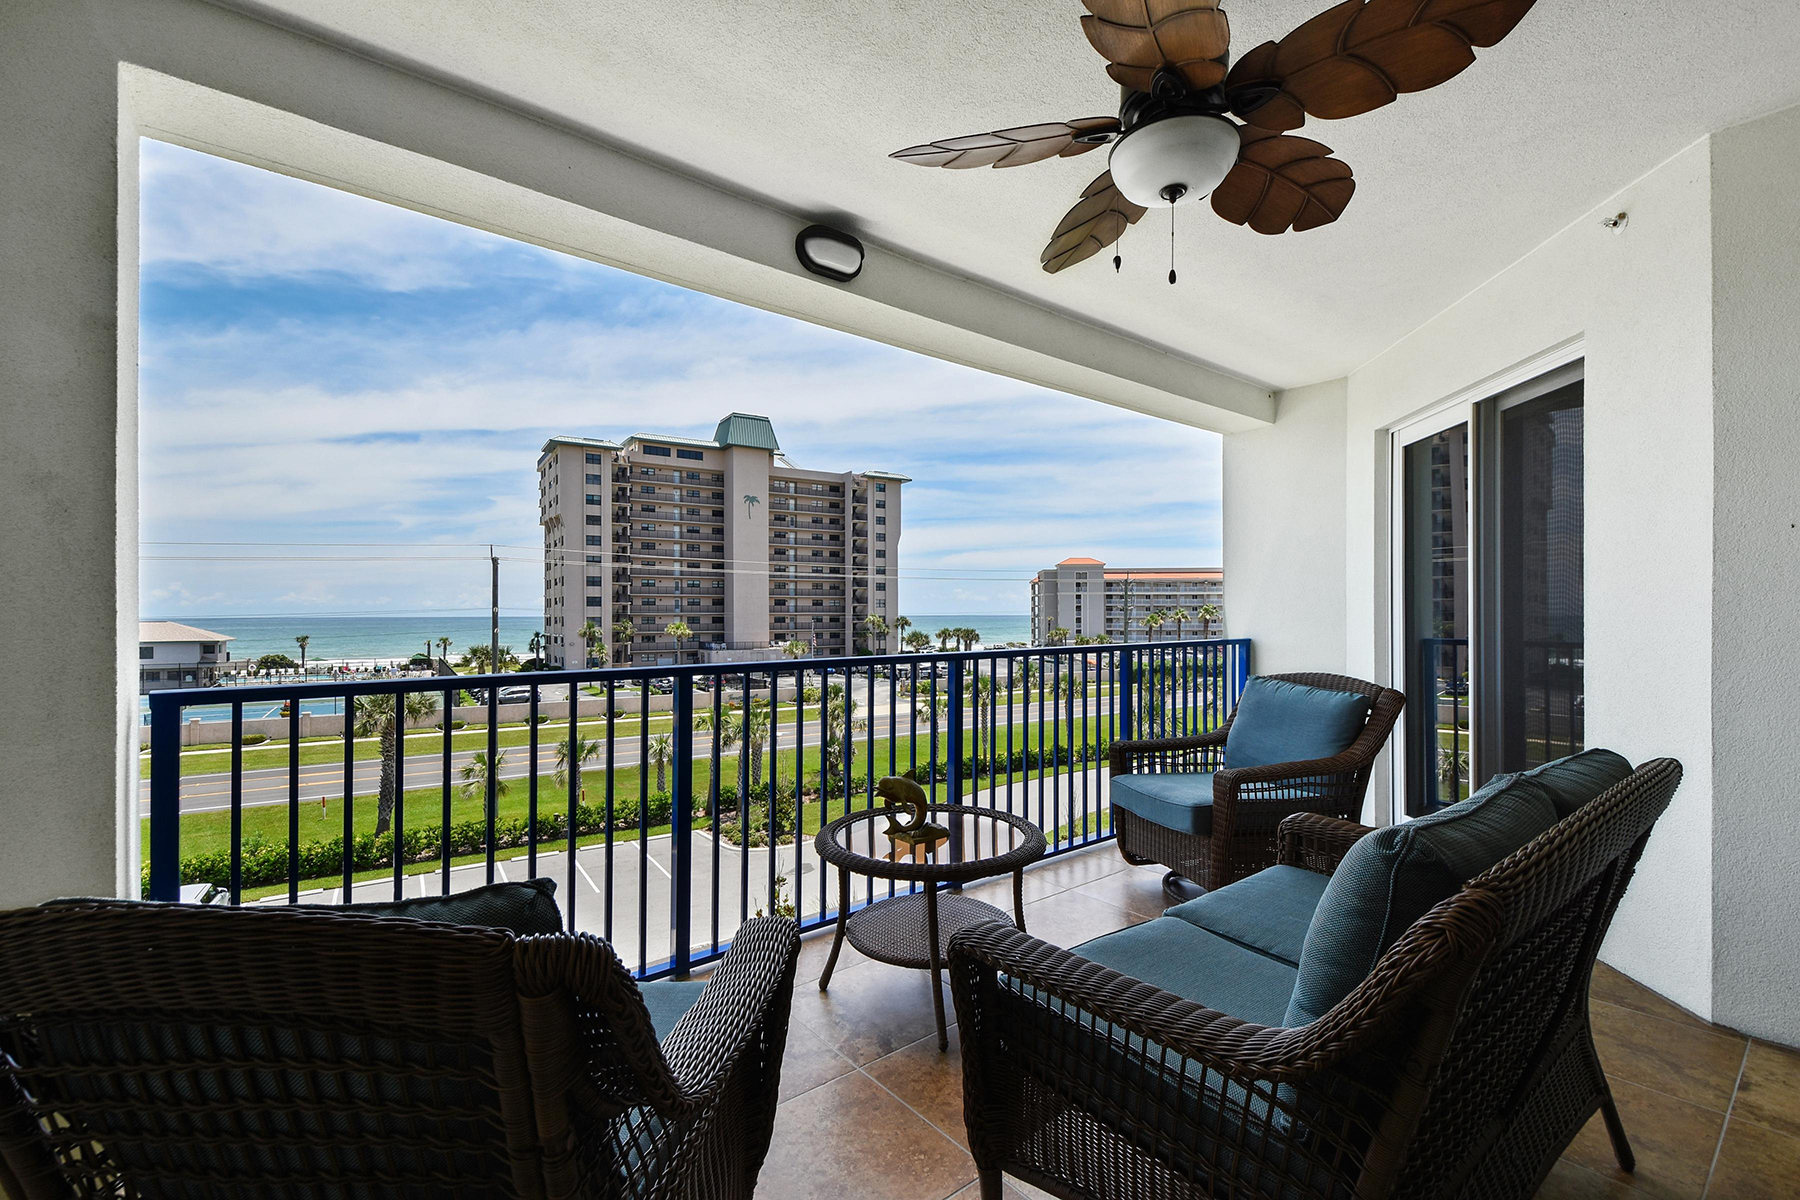 Condominium for Sale at 5300 S Atlantic Ave , 18406, New Smyrna Beach, FL 5300 S Atlantic Ave 18406 New Smyrna Beach, Florida 32169 United States